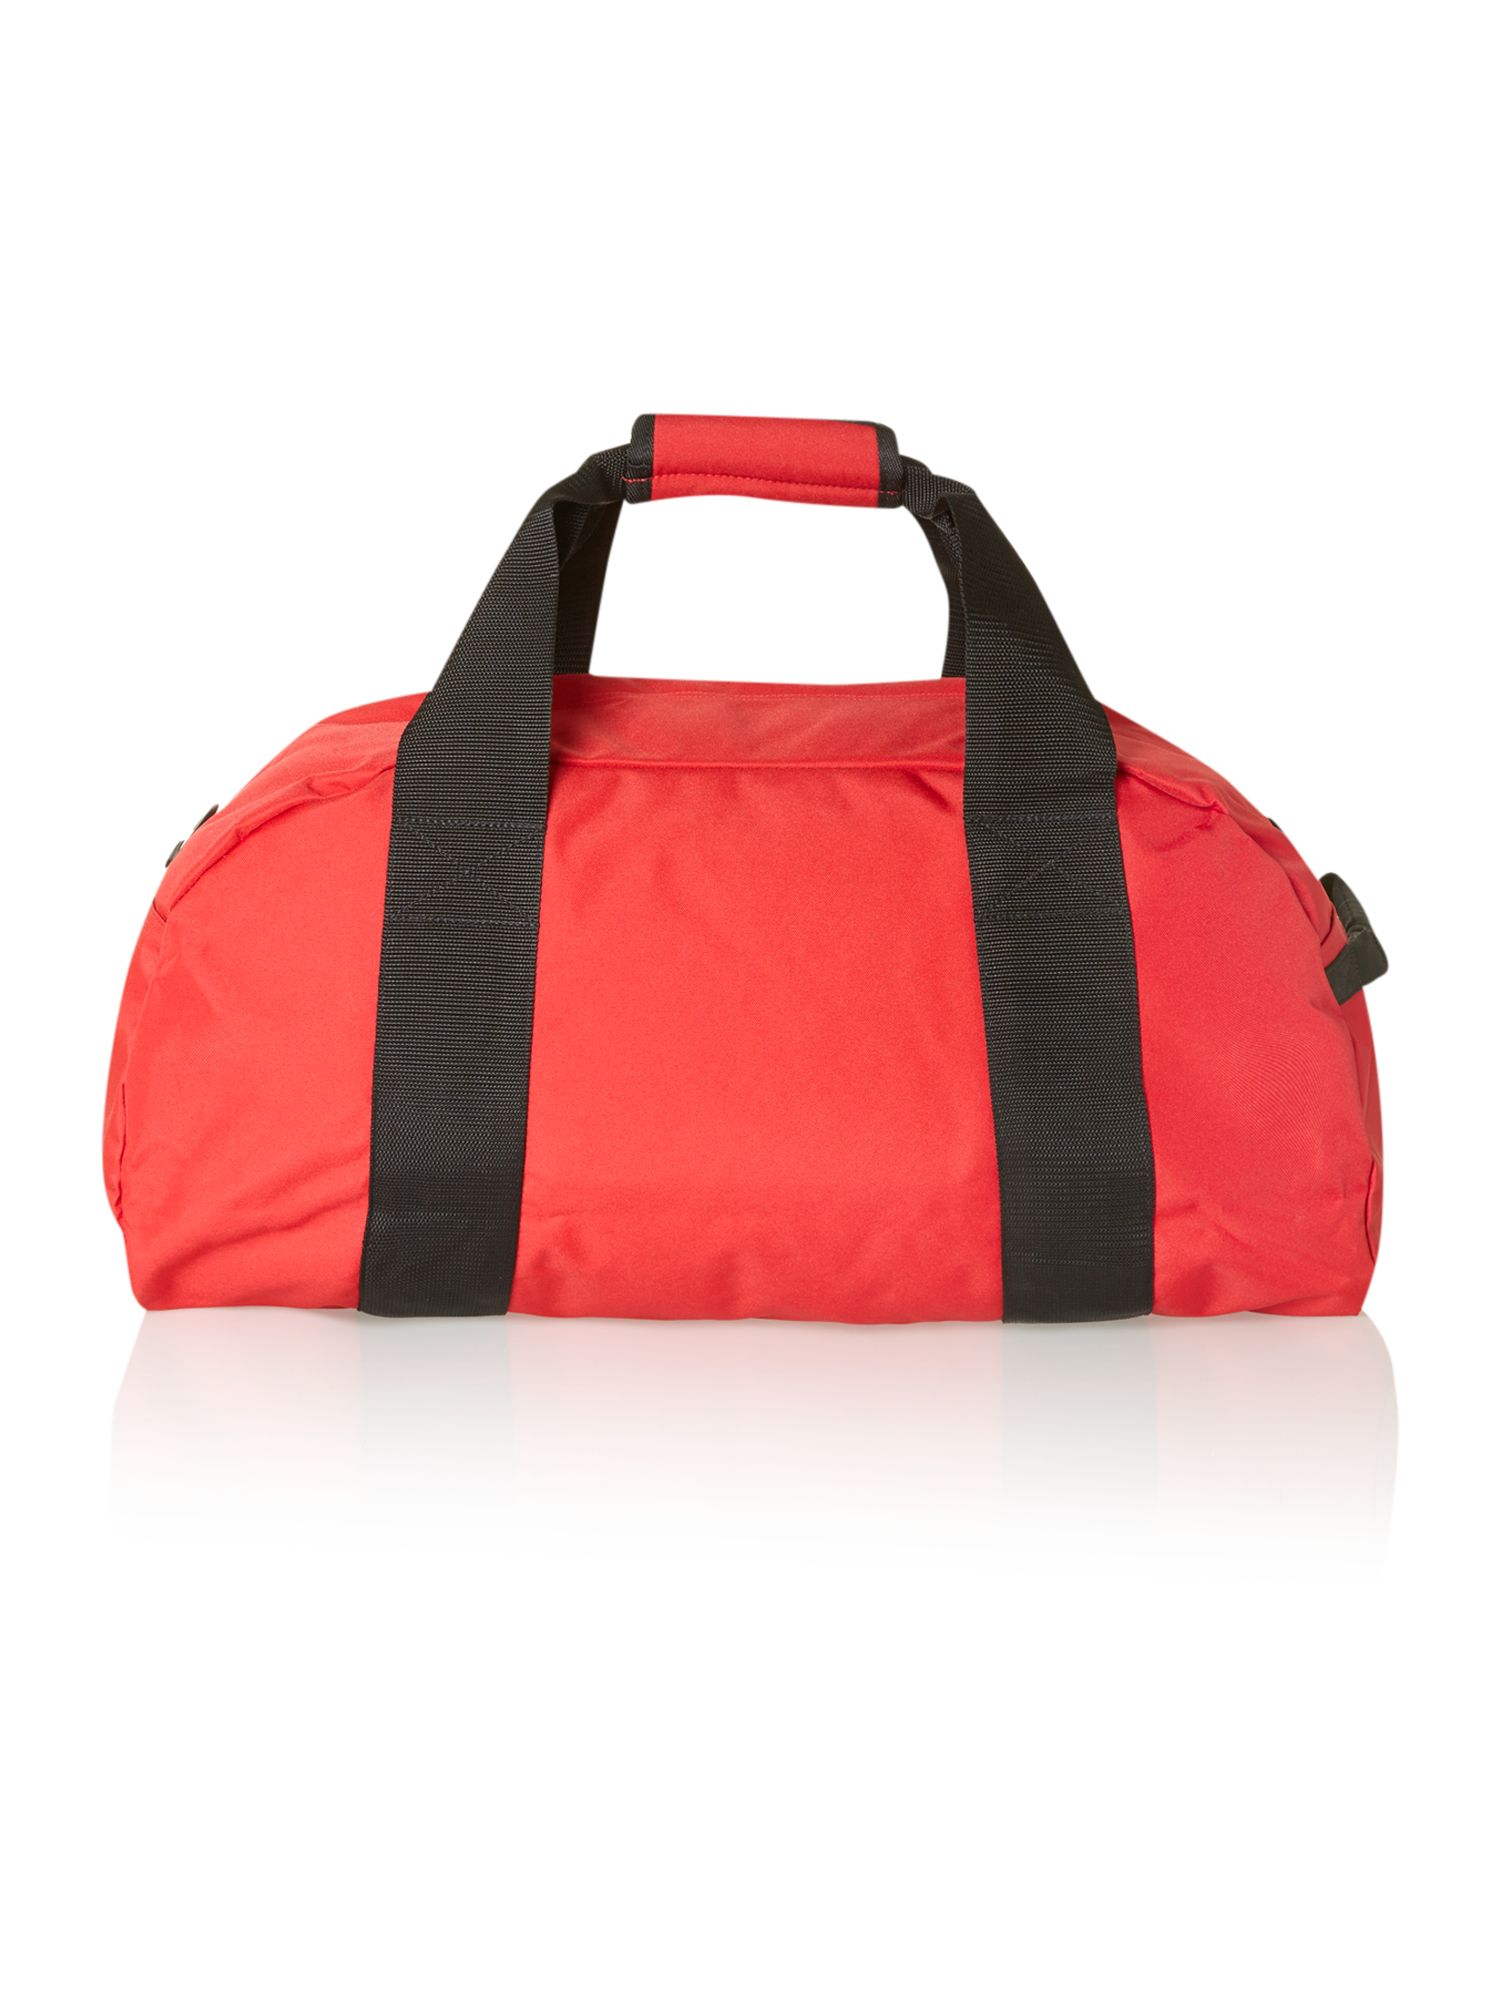 Station red holdall bag